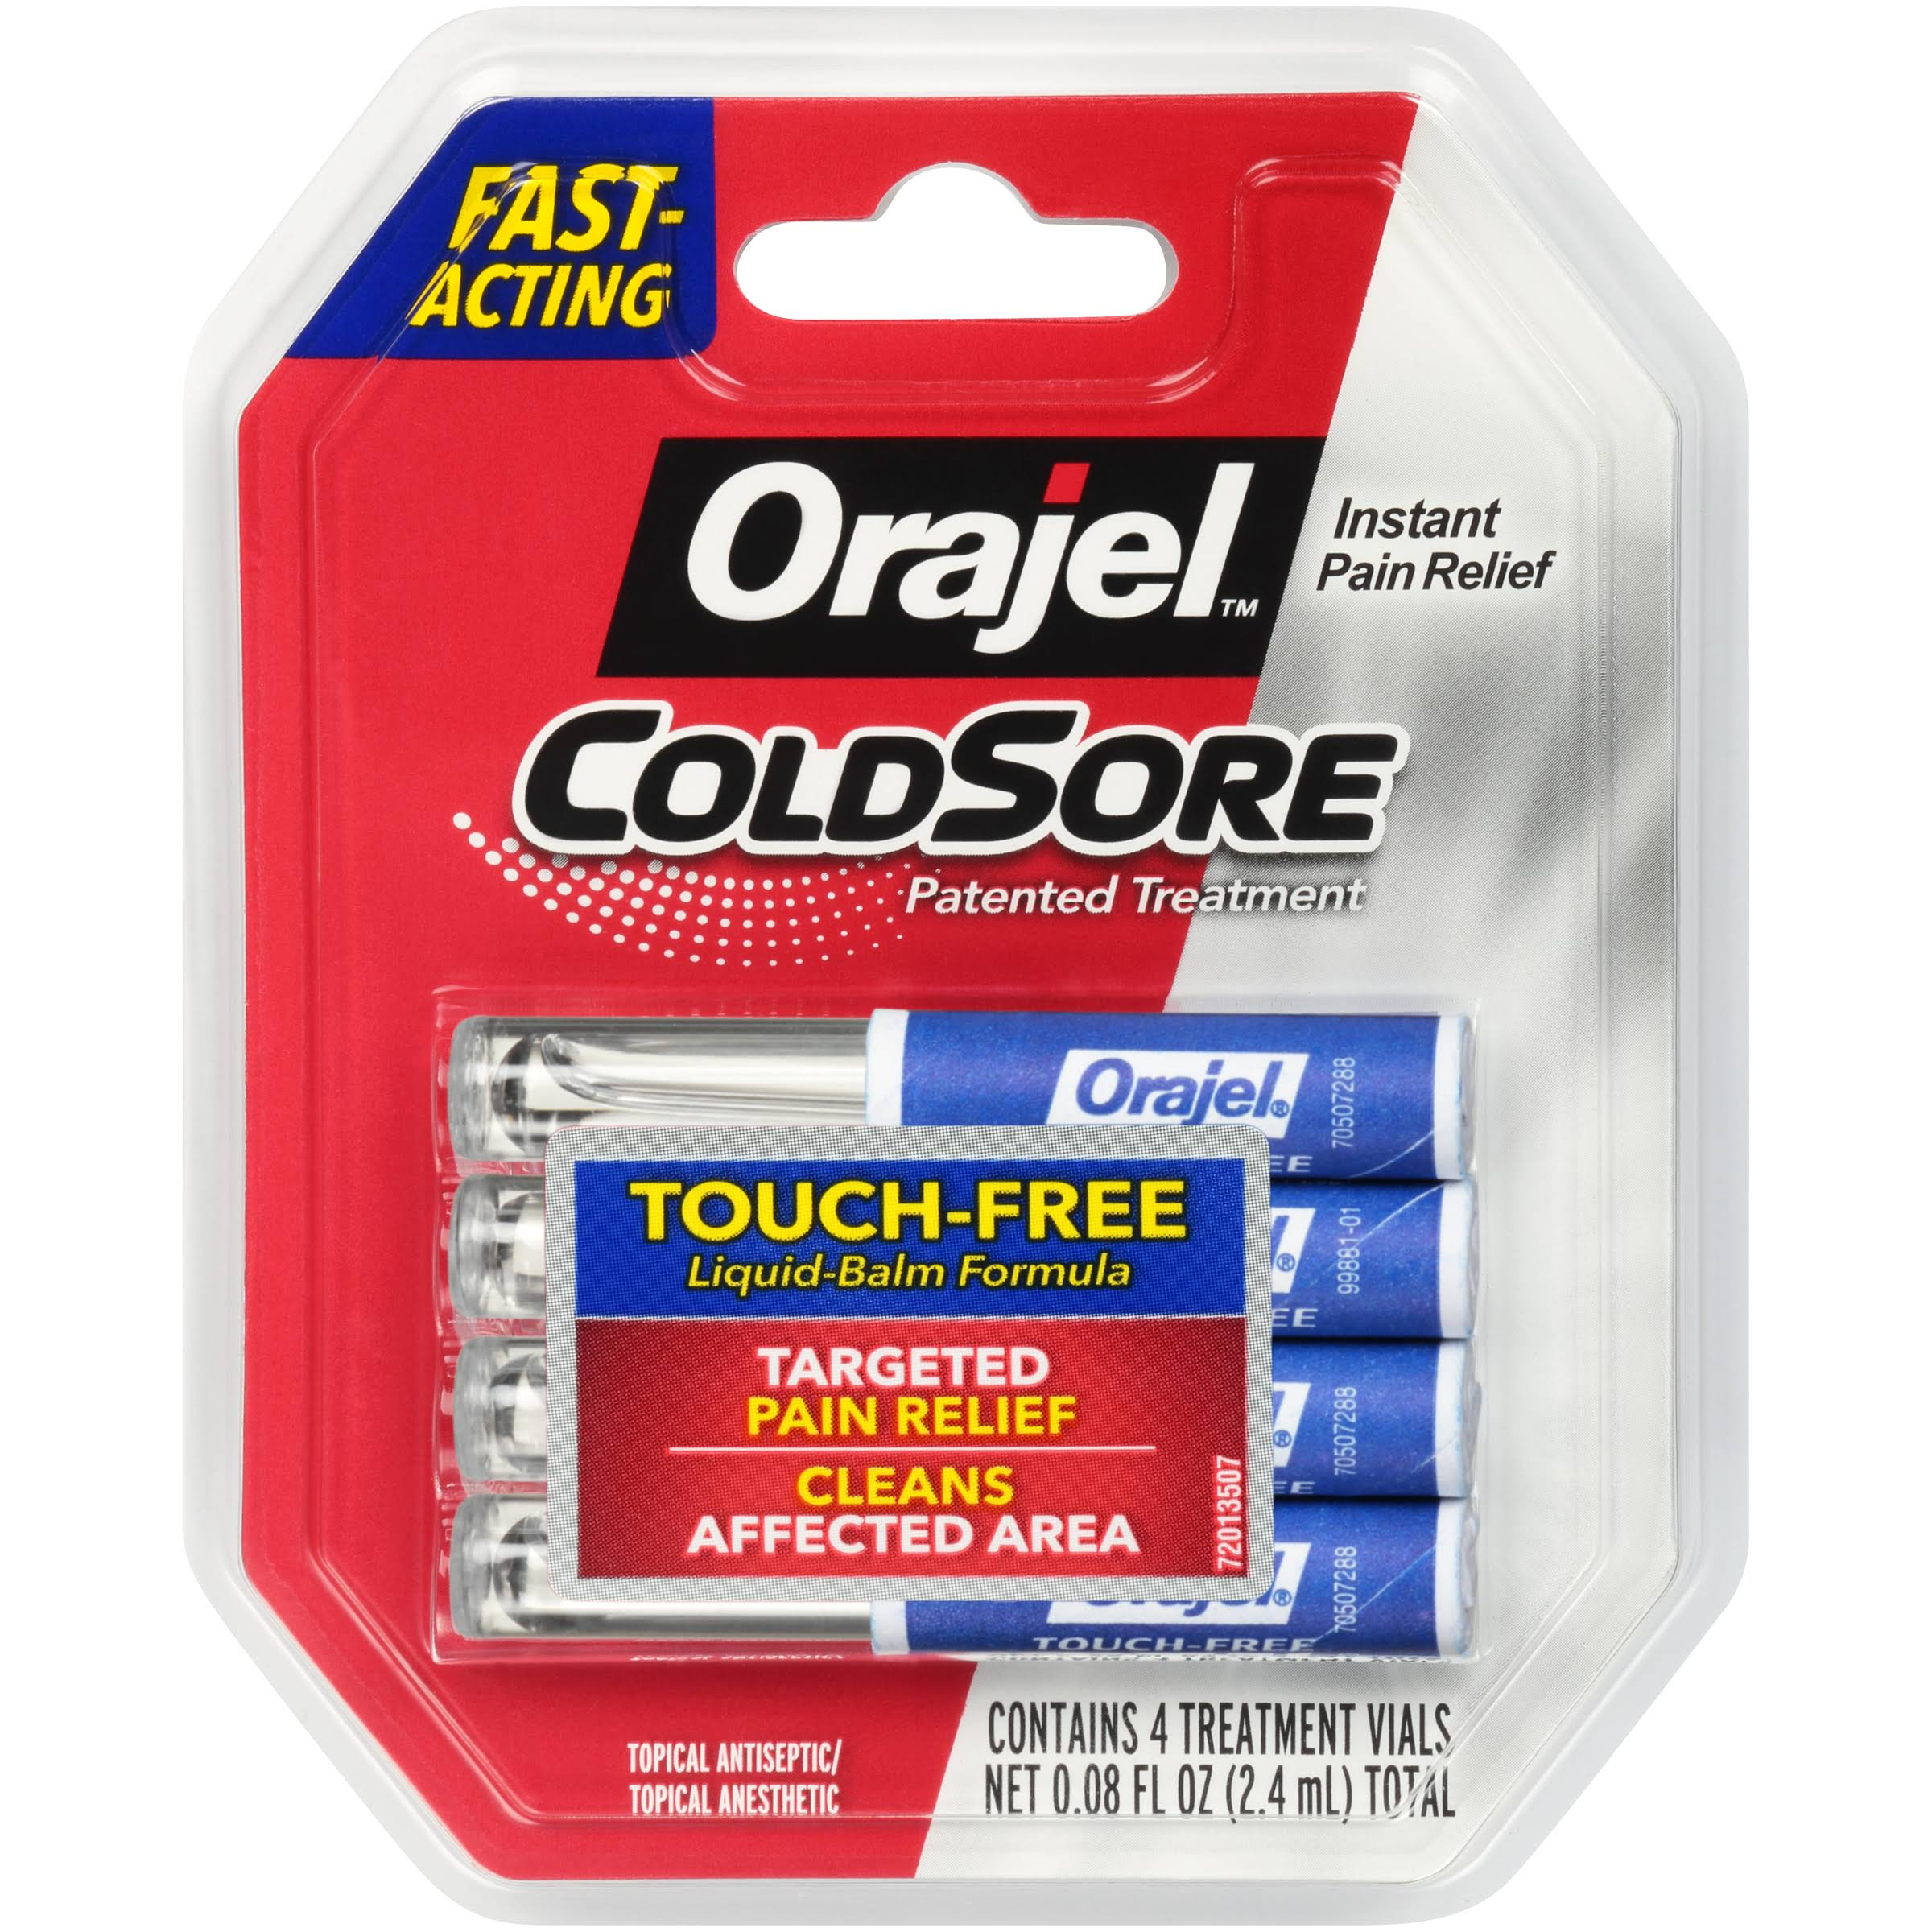 Orajel Touch-Free Cold Sore Treatment - With Applicator, 0.08oz, 4 Vials